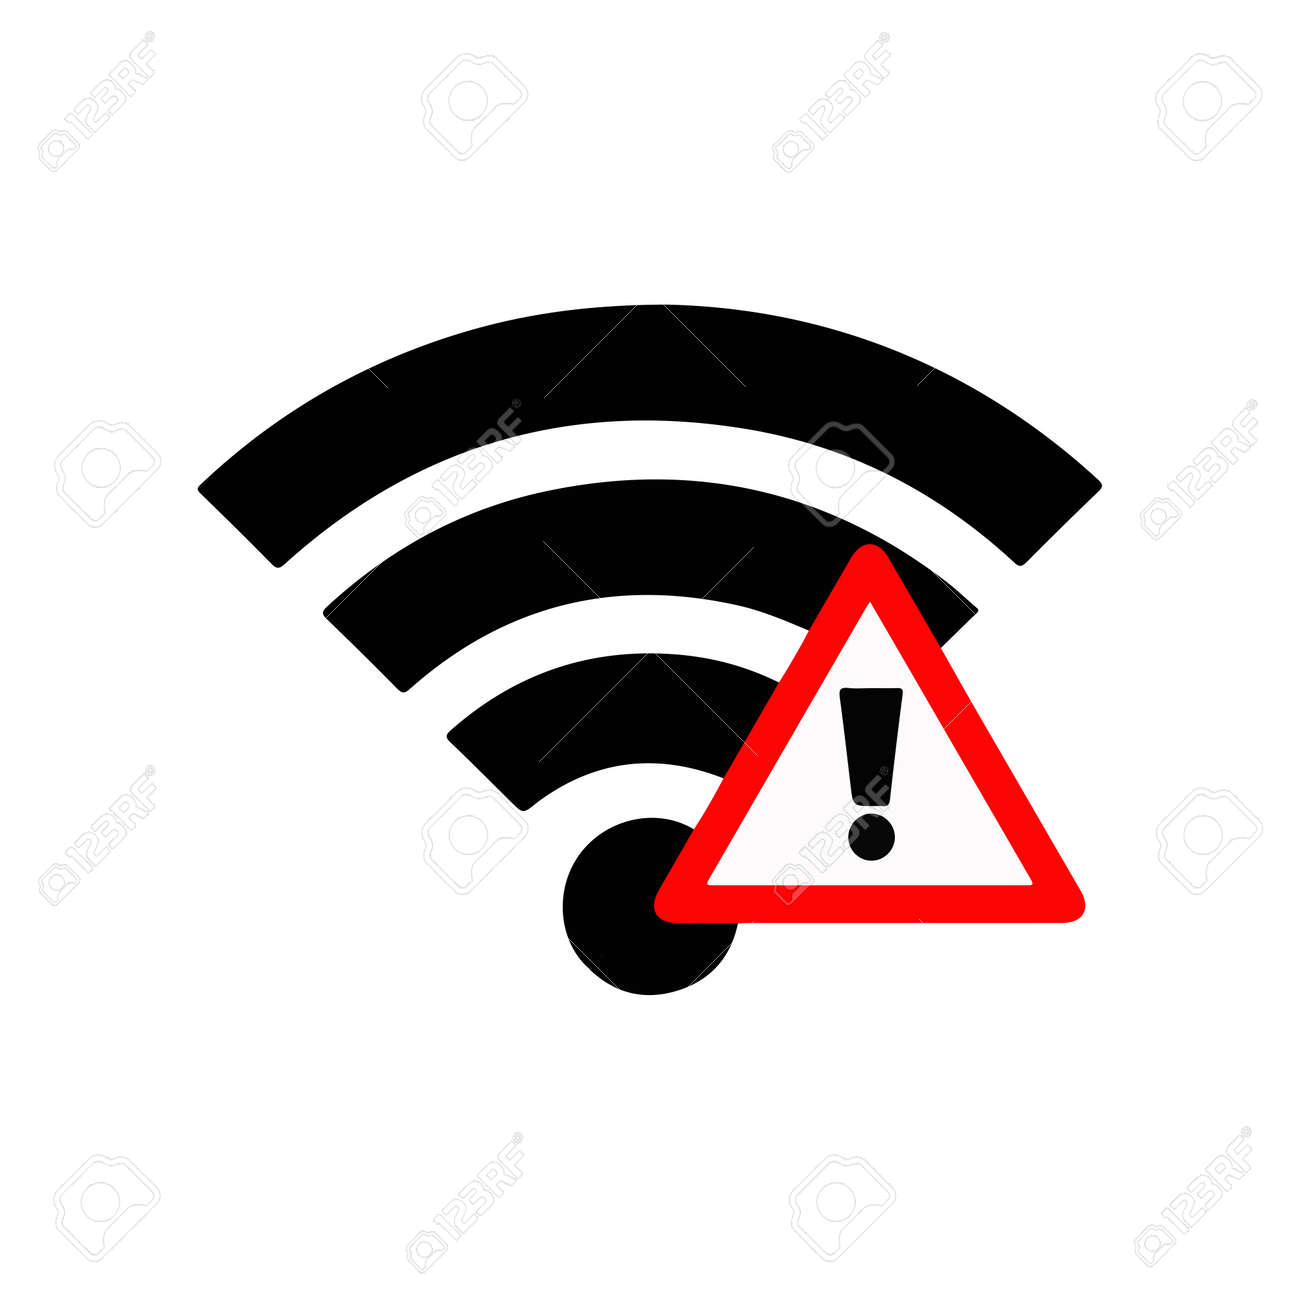 Illustration vector wifi sign with exclamation mark royalty free illustration vector wifi sign with exclamation mark stock vector 62141458 biocorpaavc